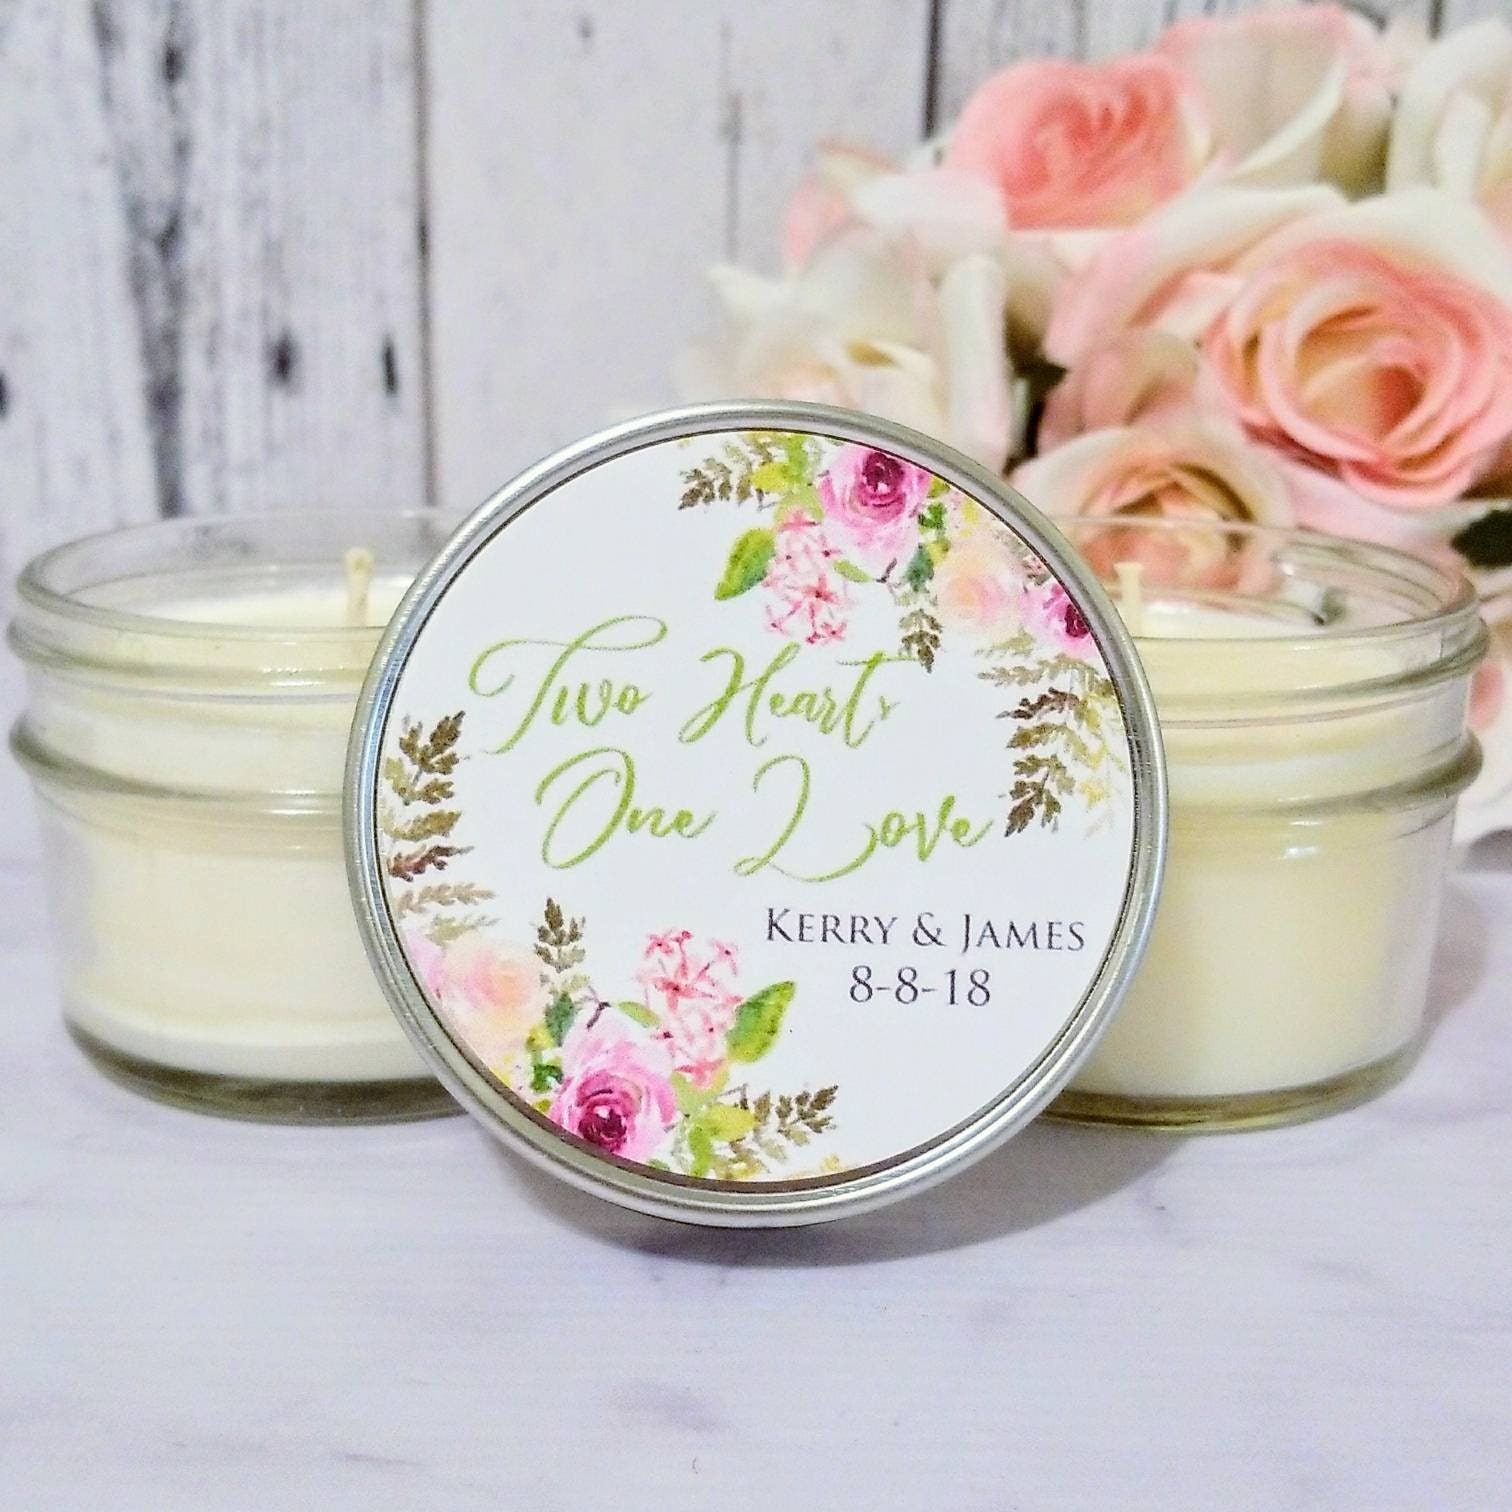 Floral Wedding Favors - Wedding Favors Candles - Floral Favors ...